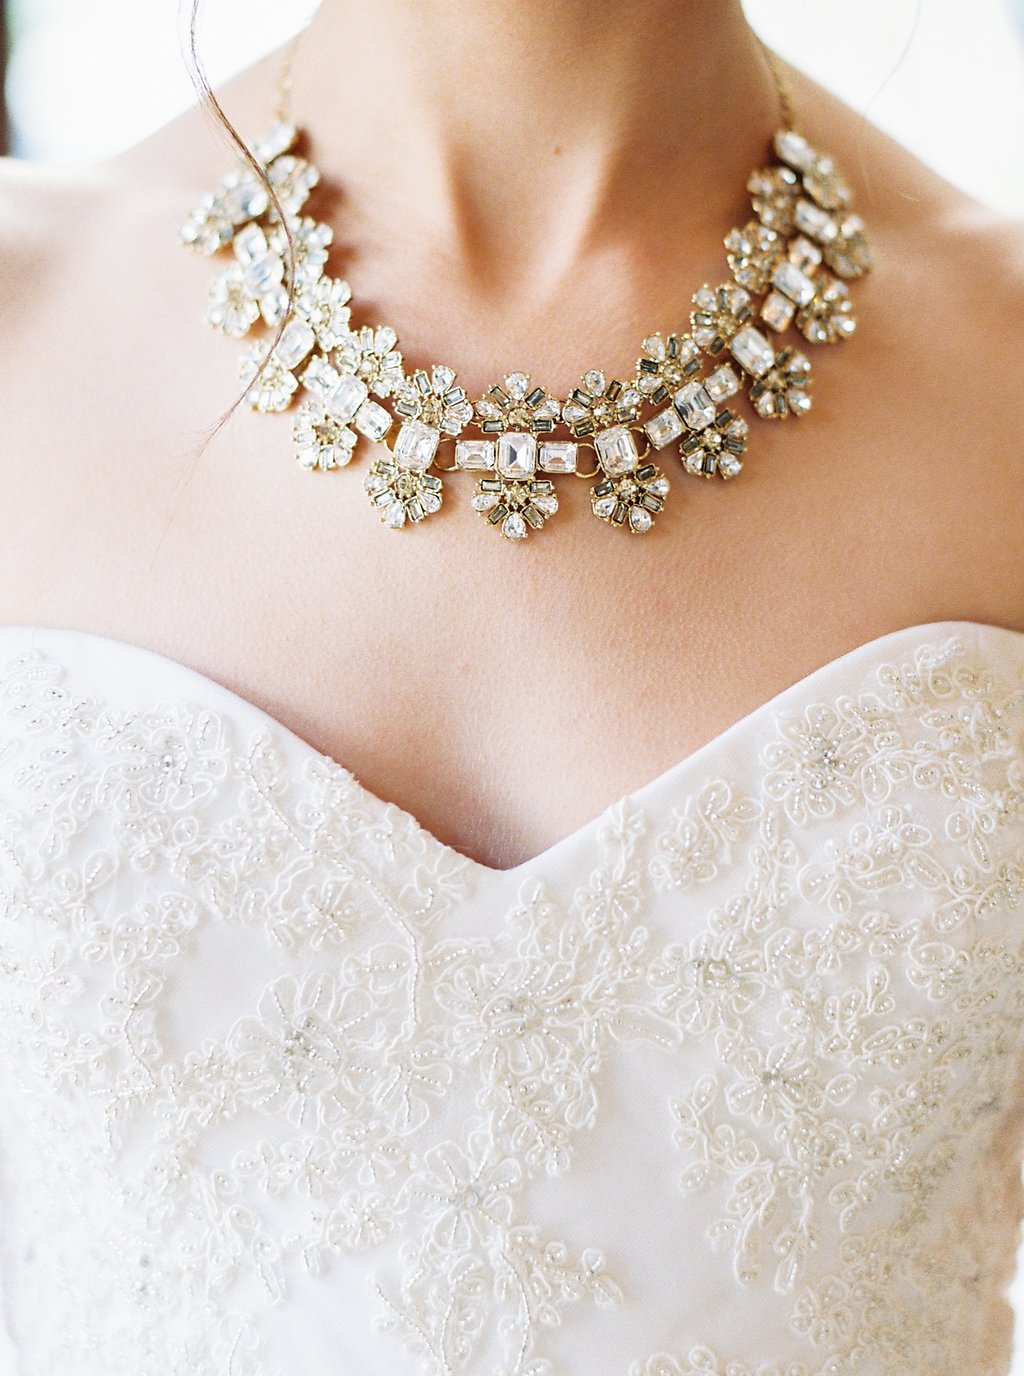 Bride Getting Ready Photos | Kate Spade Bridal Necklace and Reem Acra Wedding Gown | Simply Jessica Marie's Southern Wedding | Photo by Perry Vaile Photography